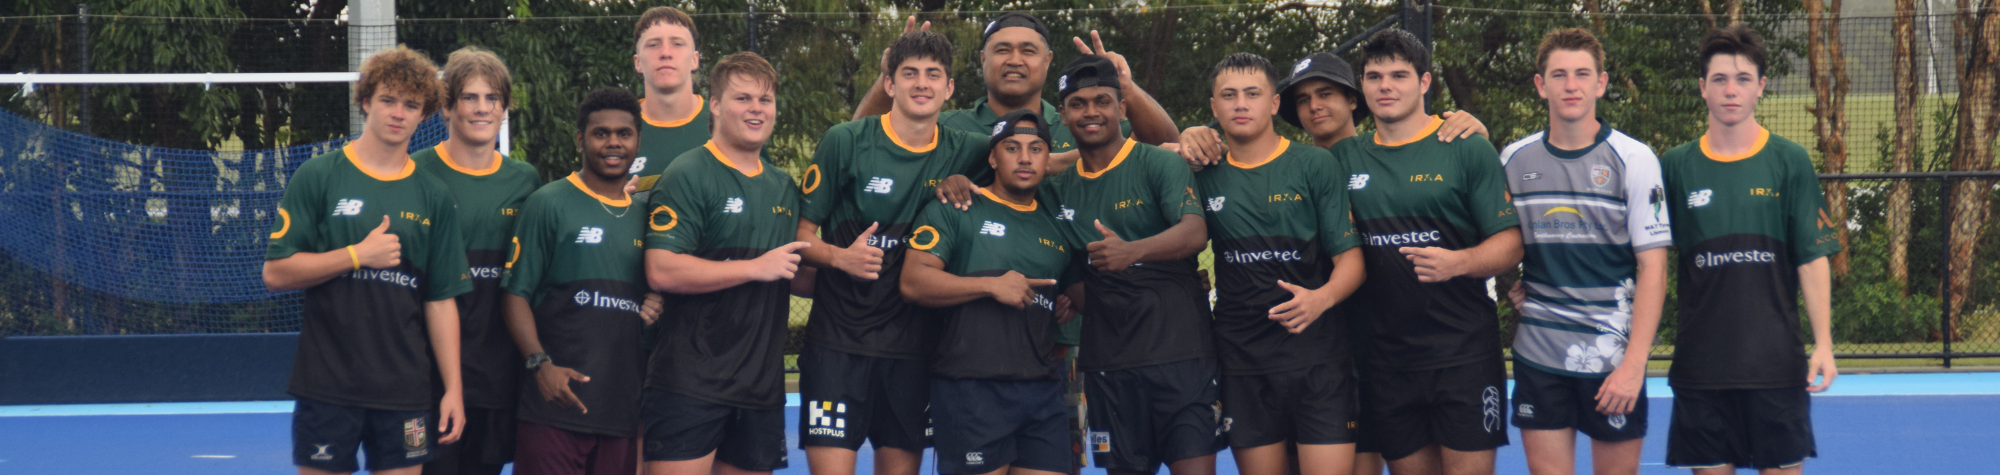 IRAA Launches Premier Rugby Academy in Queensland